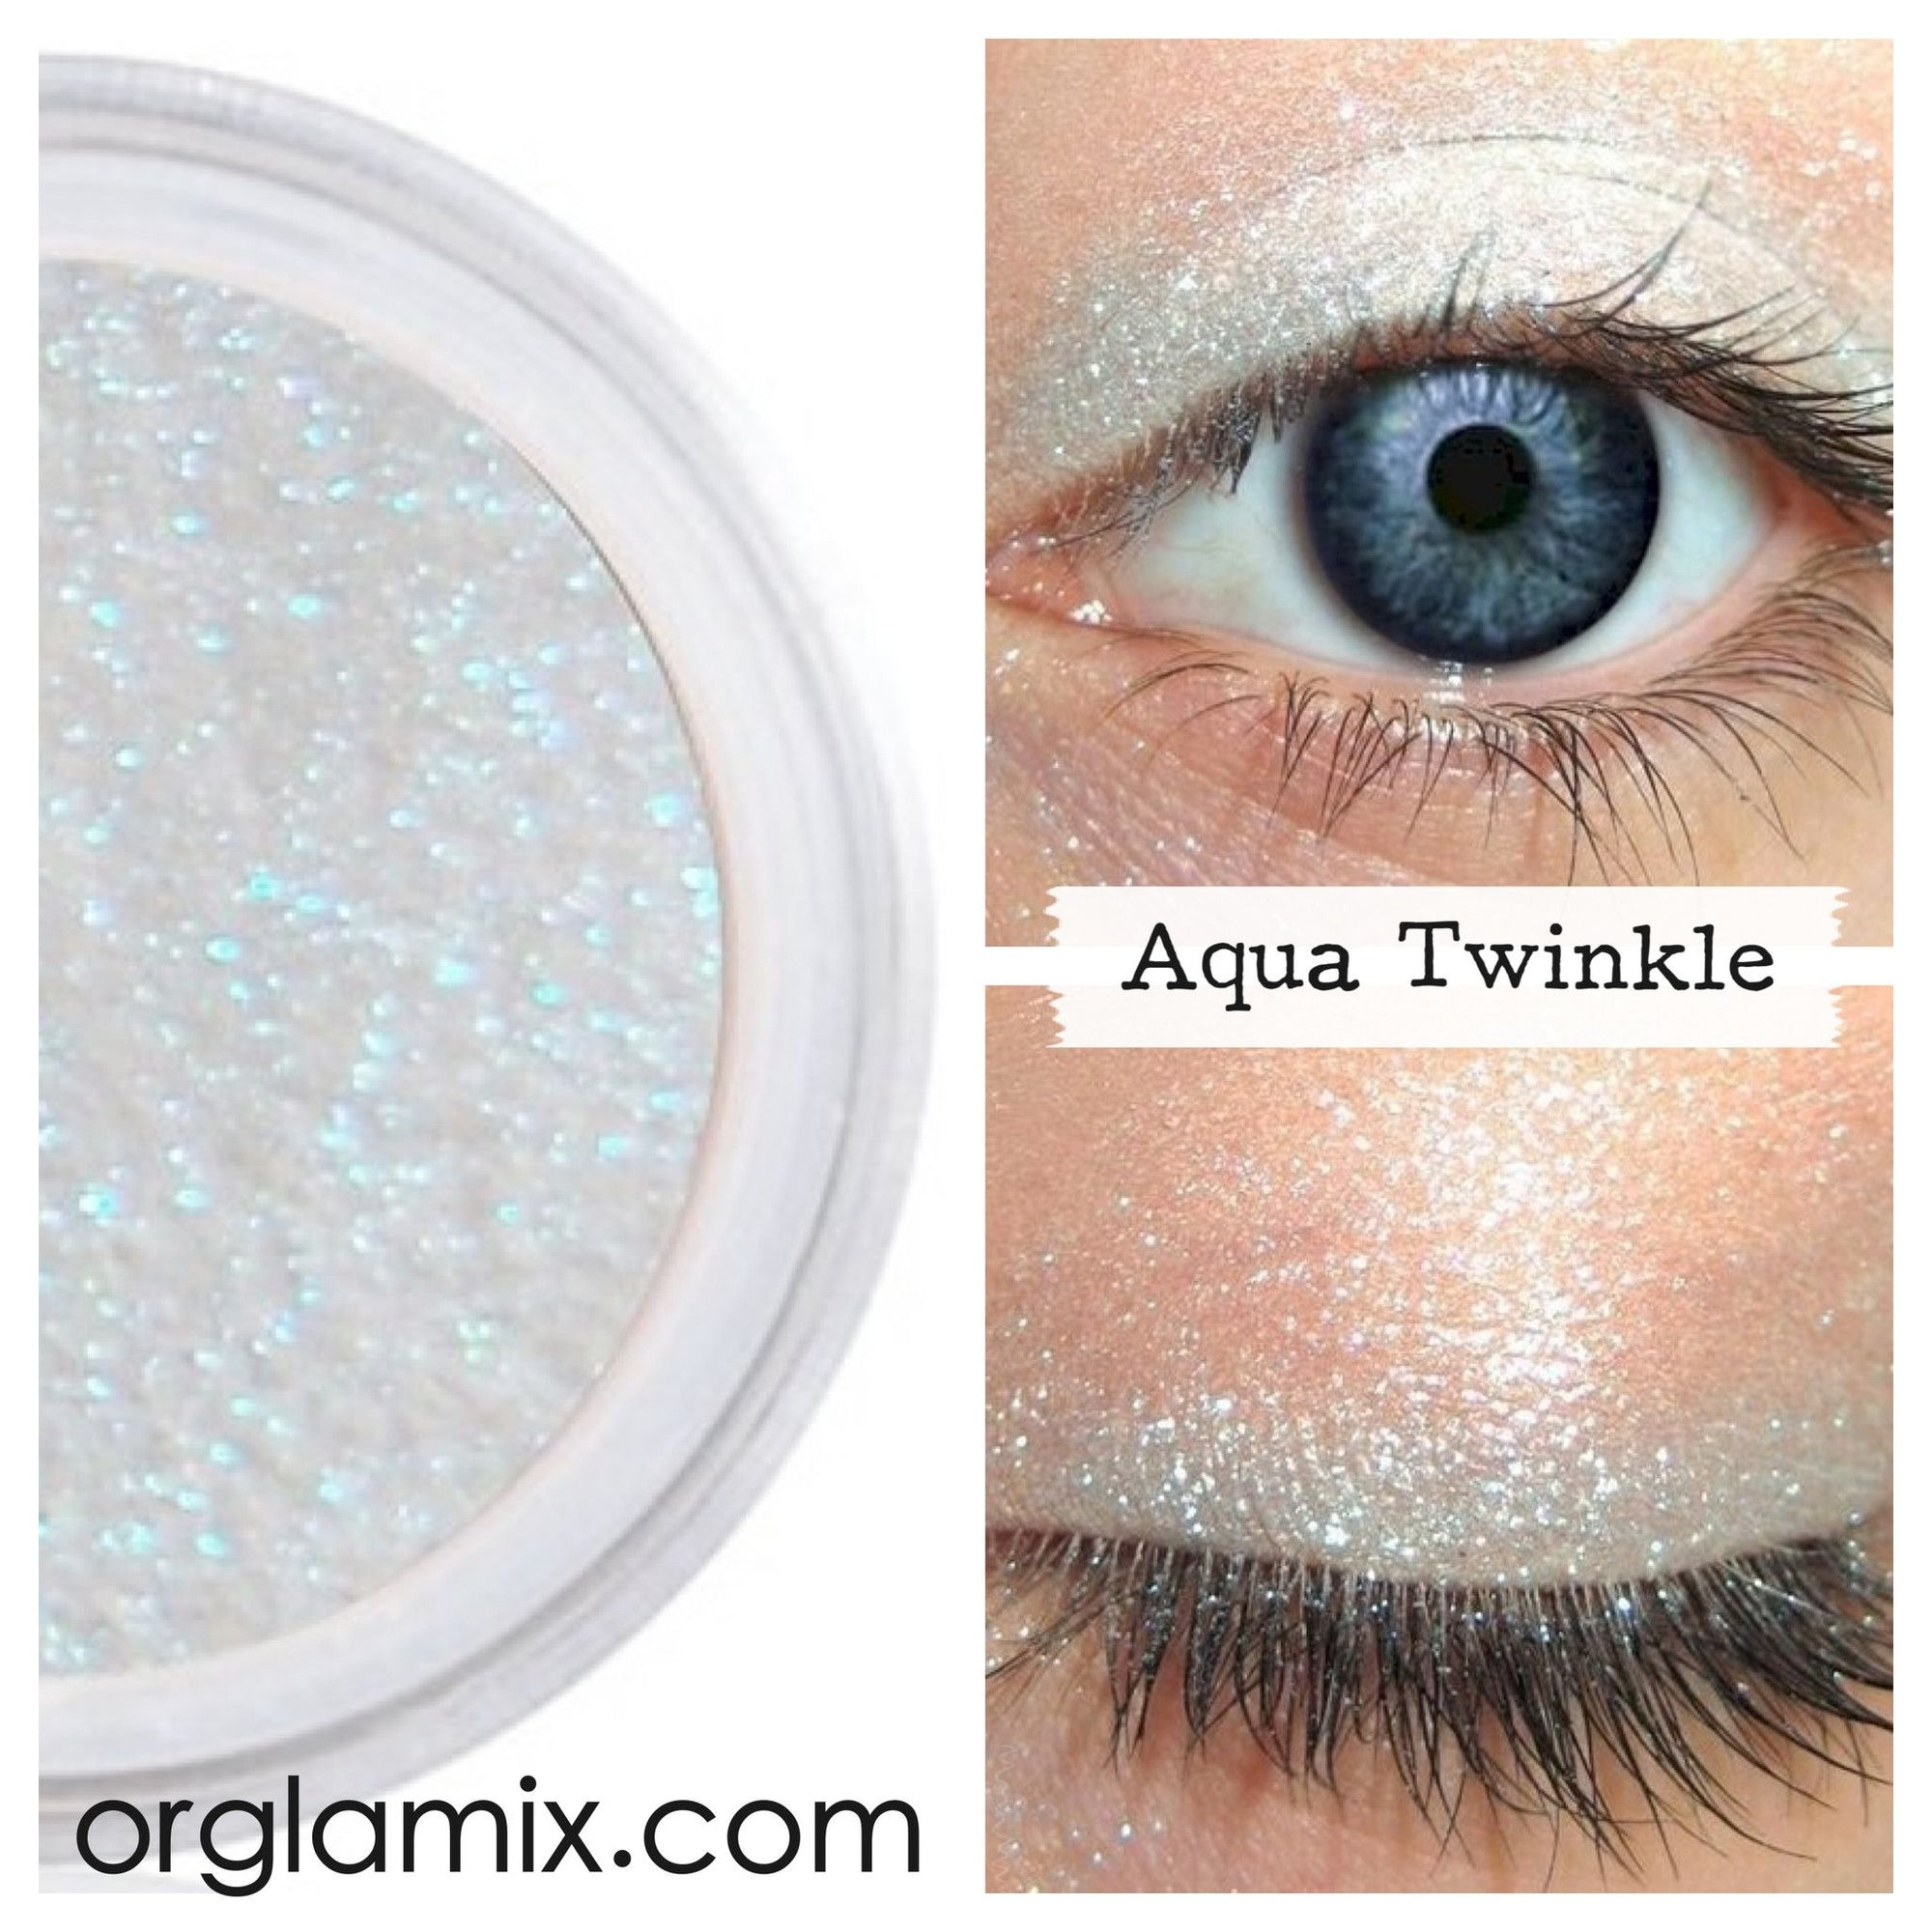 Aqua Twinkle Effects Eyeshadow - Cruelty Free Makeup, Best Mineral Makeup, Natural Beauty Products, Orglamix